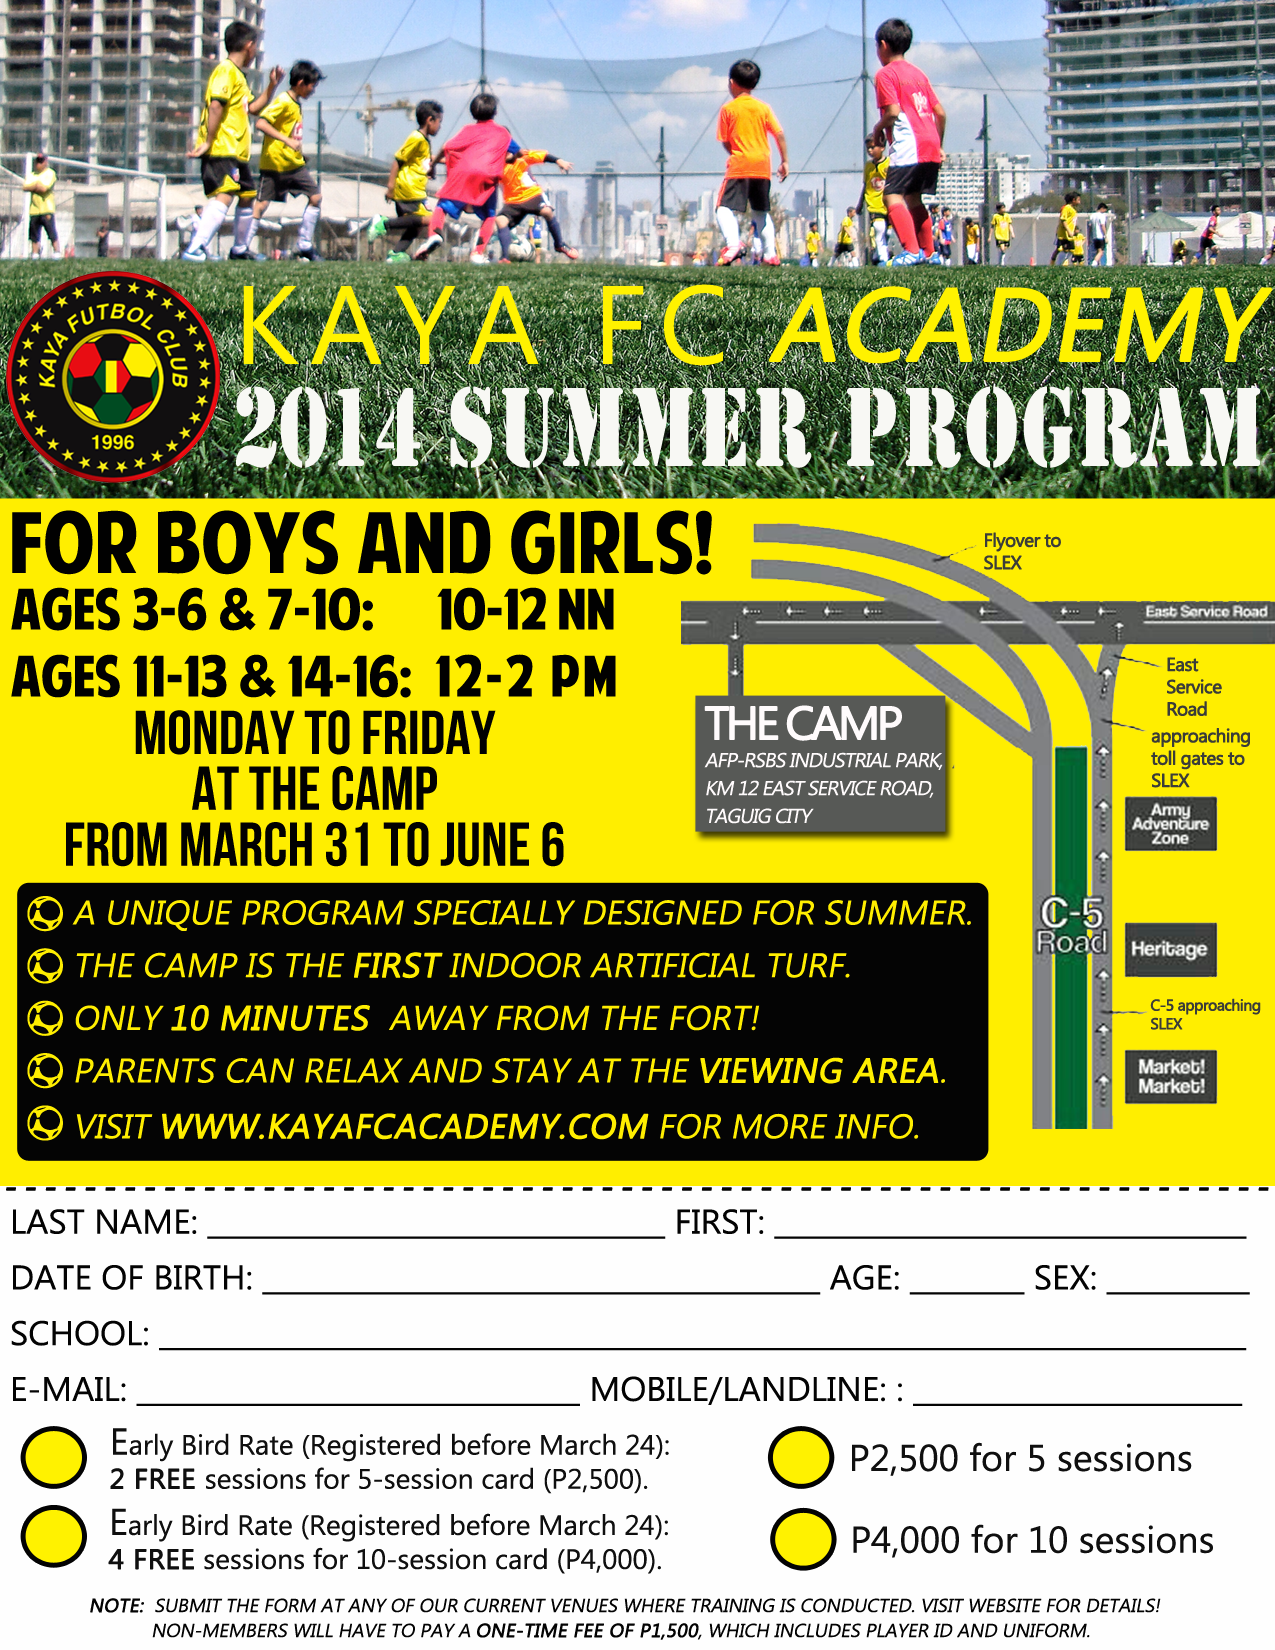 Copy of Summer Program Form